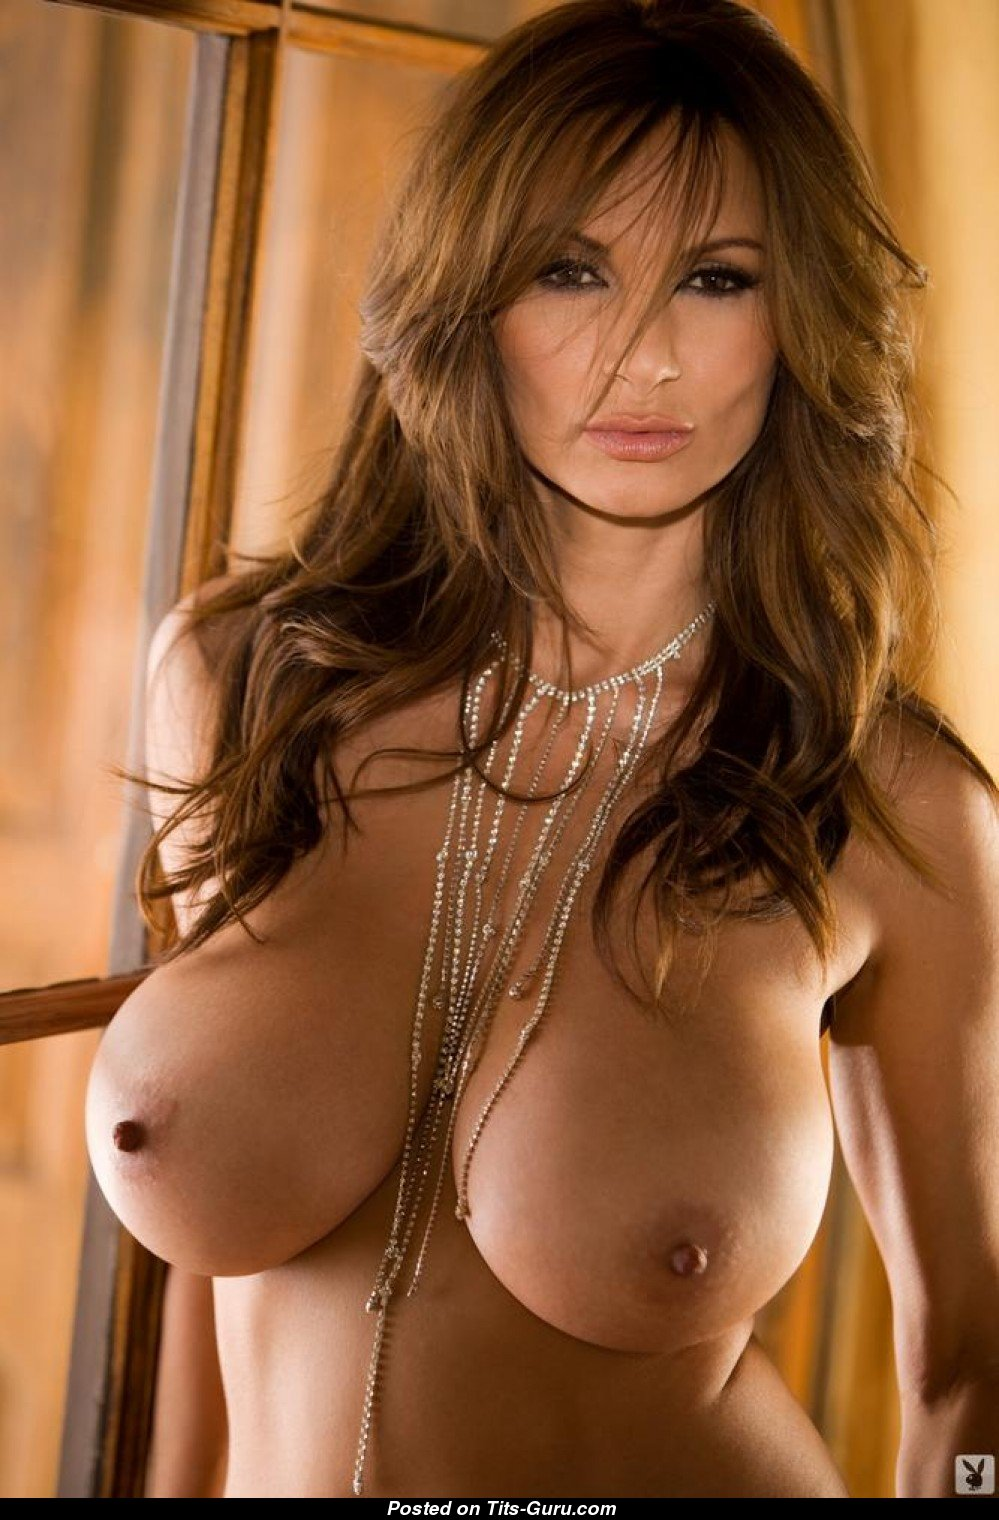 petra verkaik - nude brunette with big breast and big nipples pic